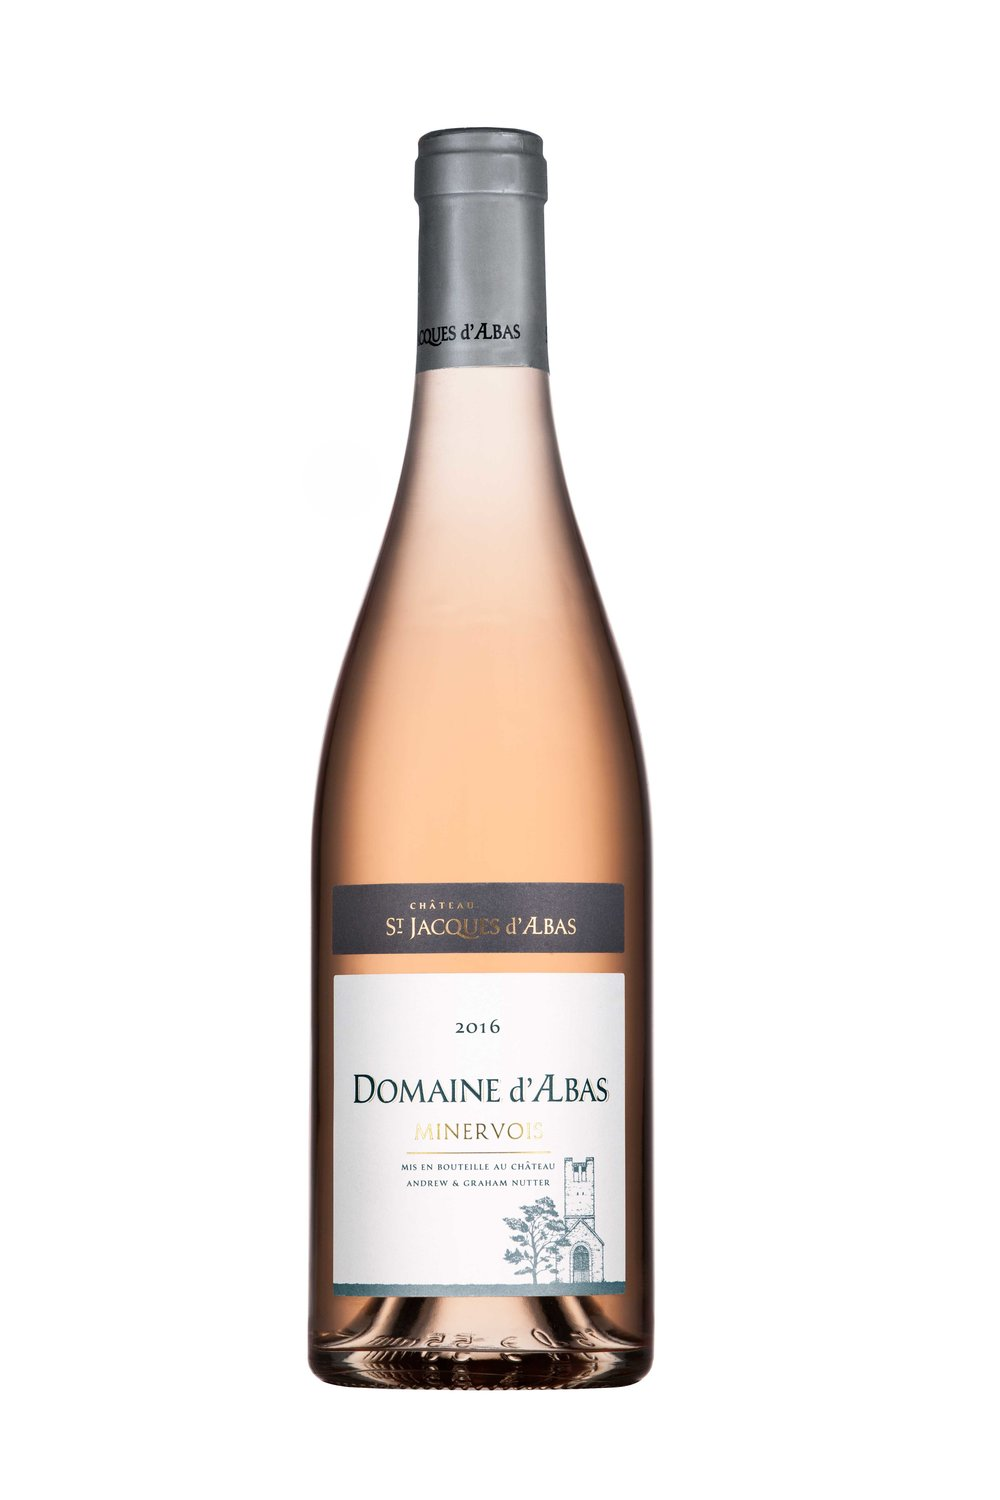 Domaine Rose bottle photo - Chateau St. Jacques